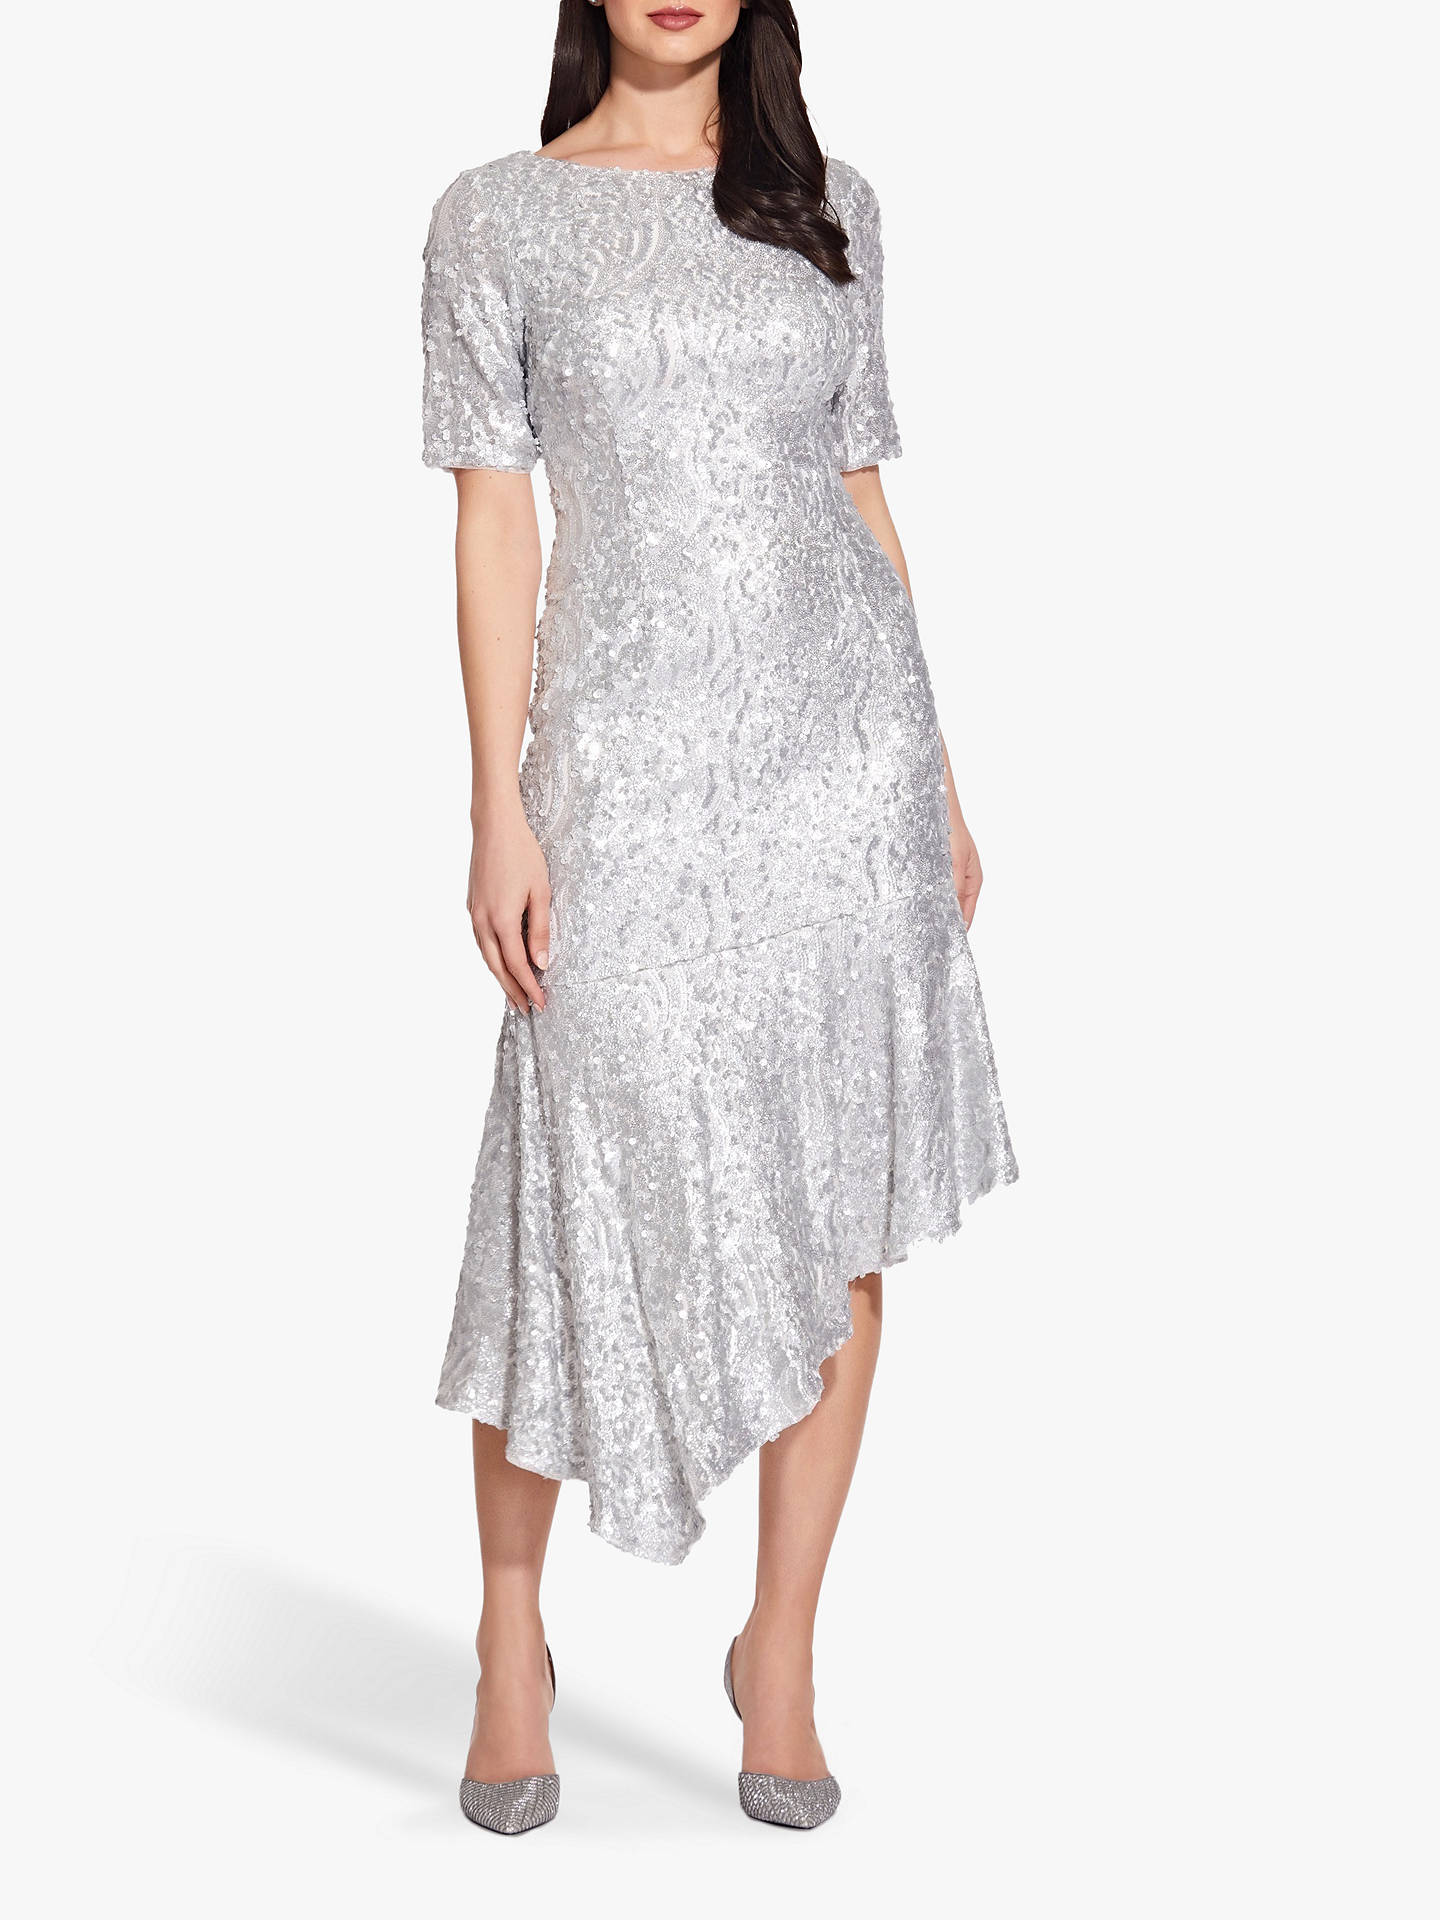 Buy Adrianna Papell Sequin Midi Dress, Silver, 6 Online at johnlewis.com